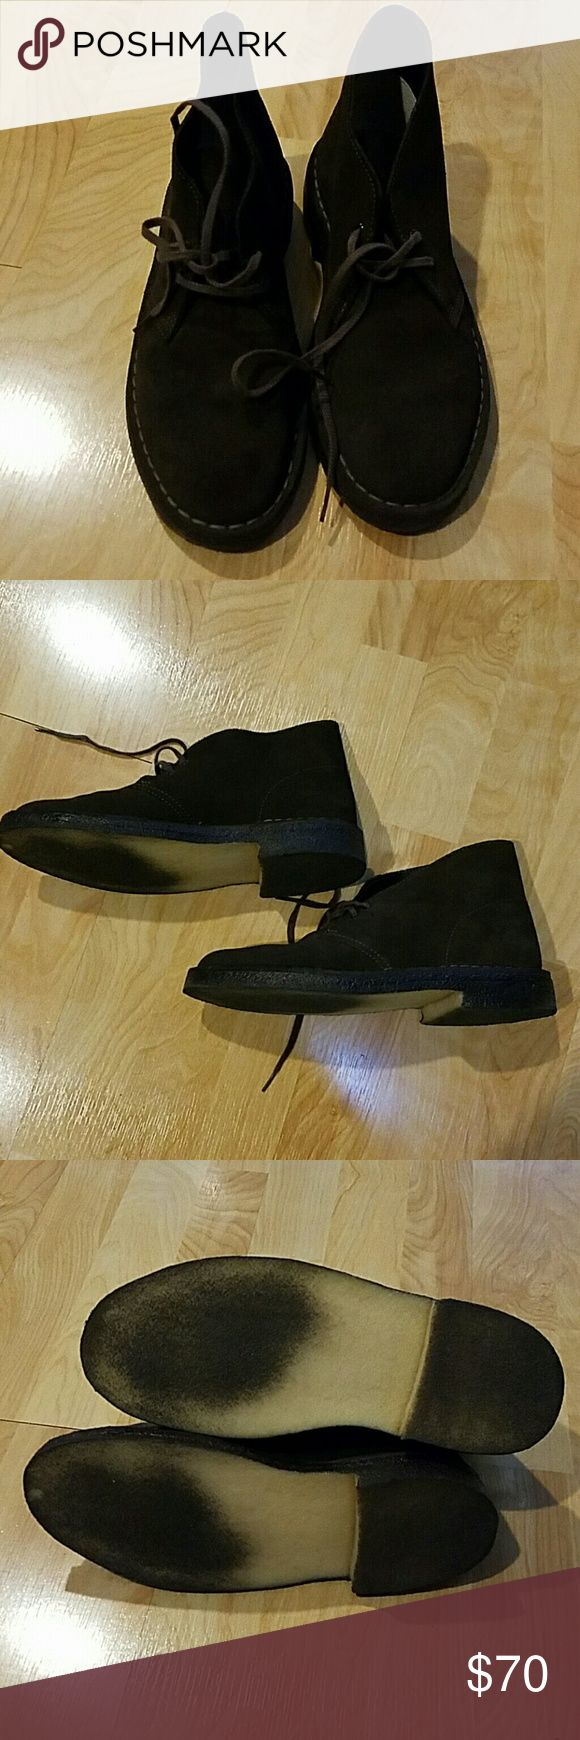 Clarks Dark Brown Chukkas Boots Dark brown Clarks chukkas in the style Desertboot. In great condition! Box included. Size 6. Color is a dark brown. Clarks are unisex but these are the men size! Clarks Shoes Chukka Boots